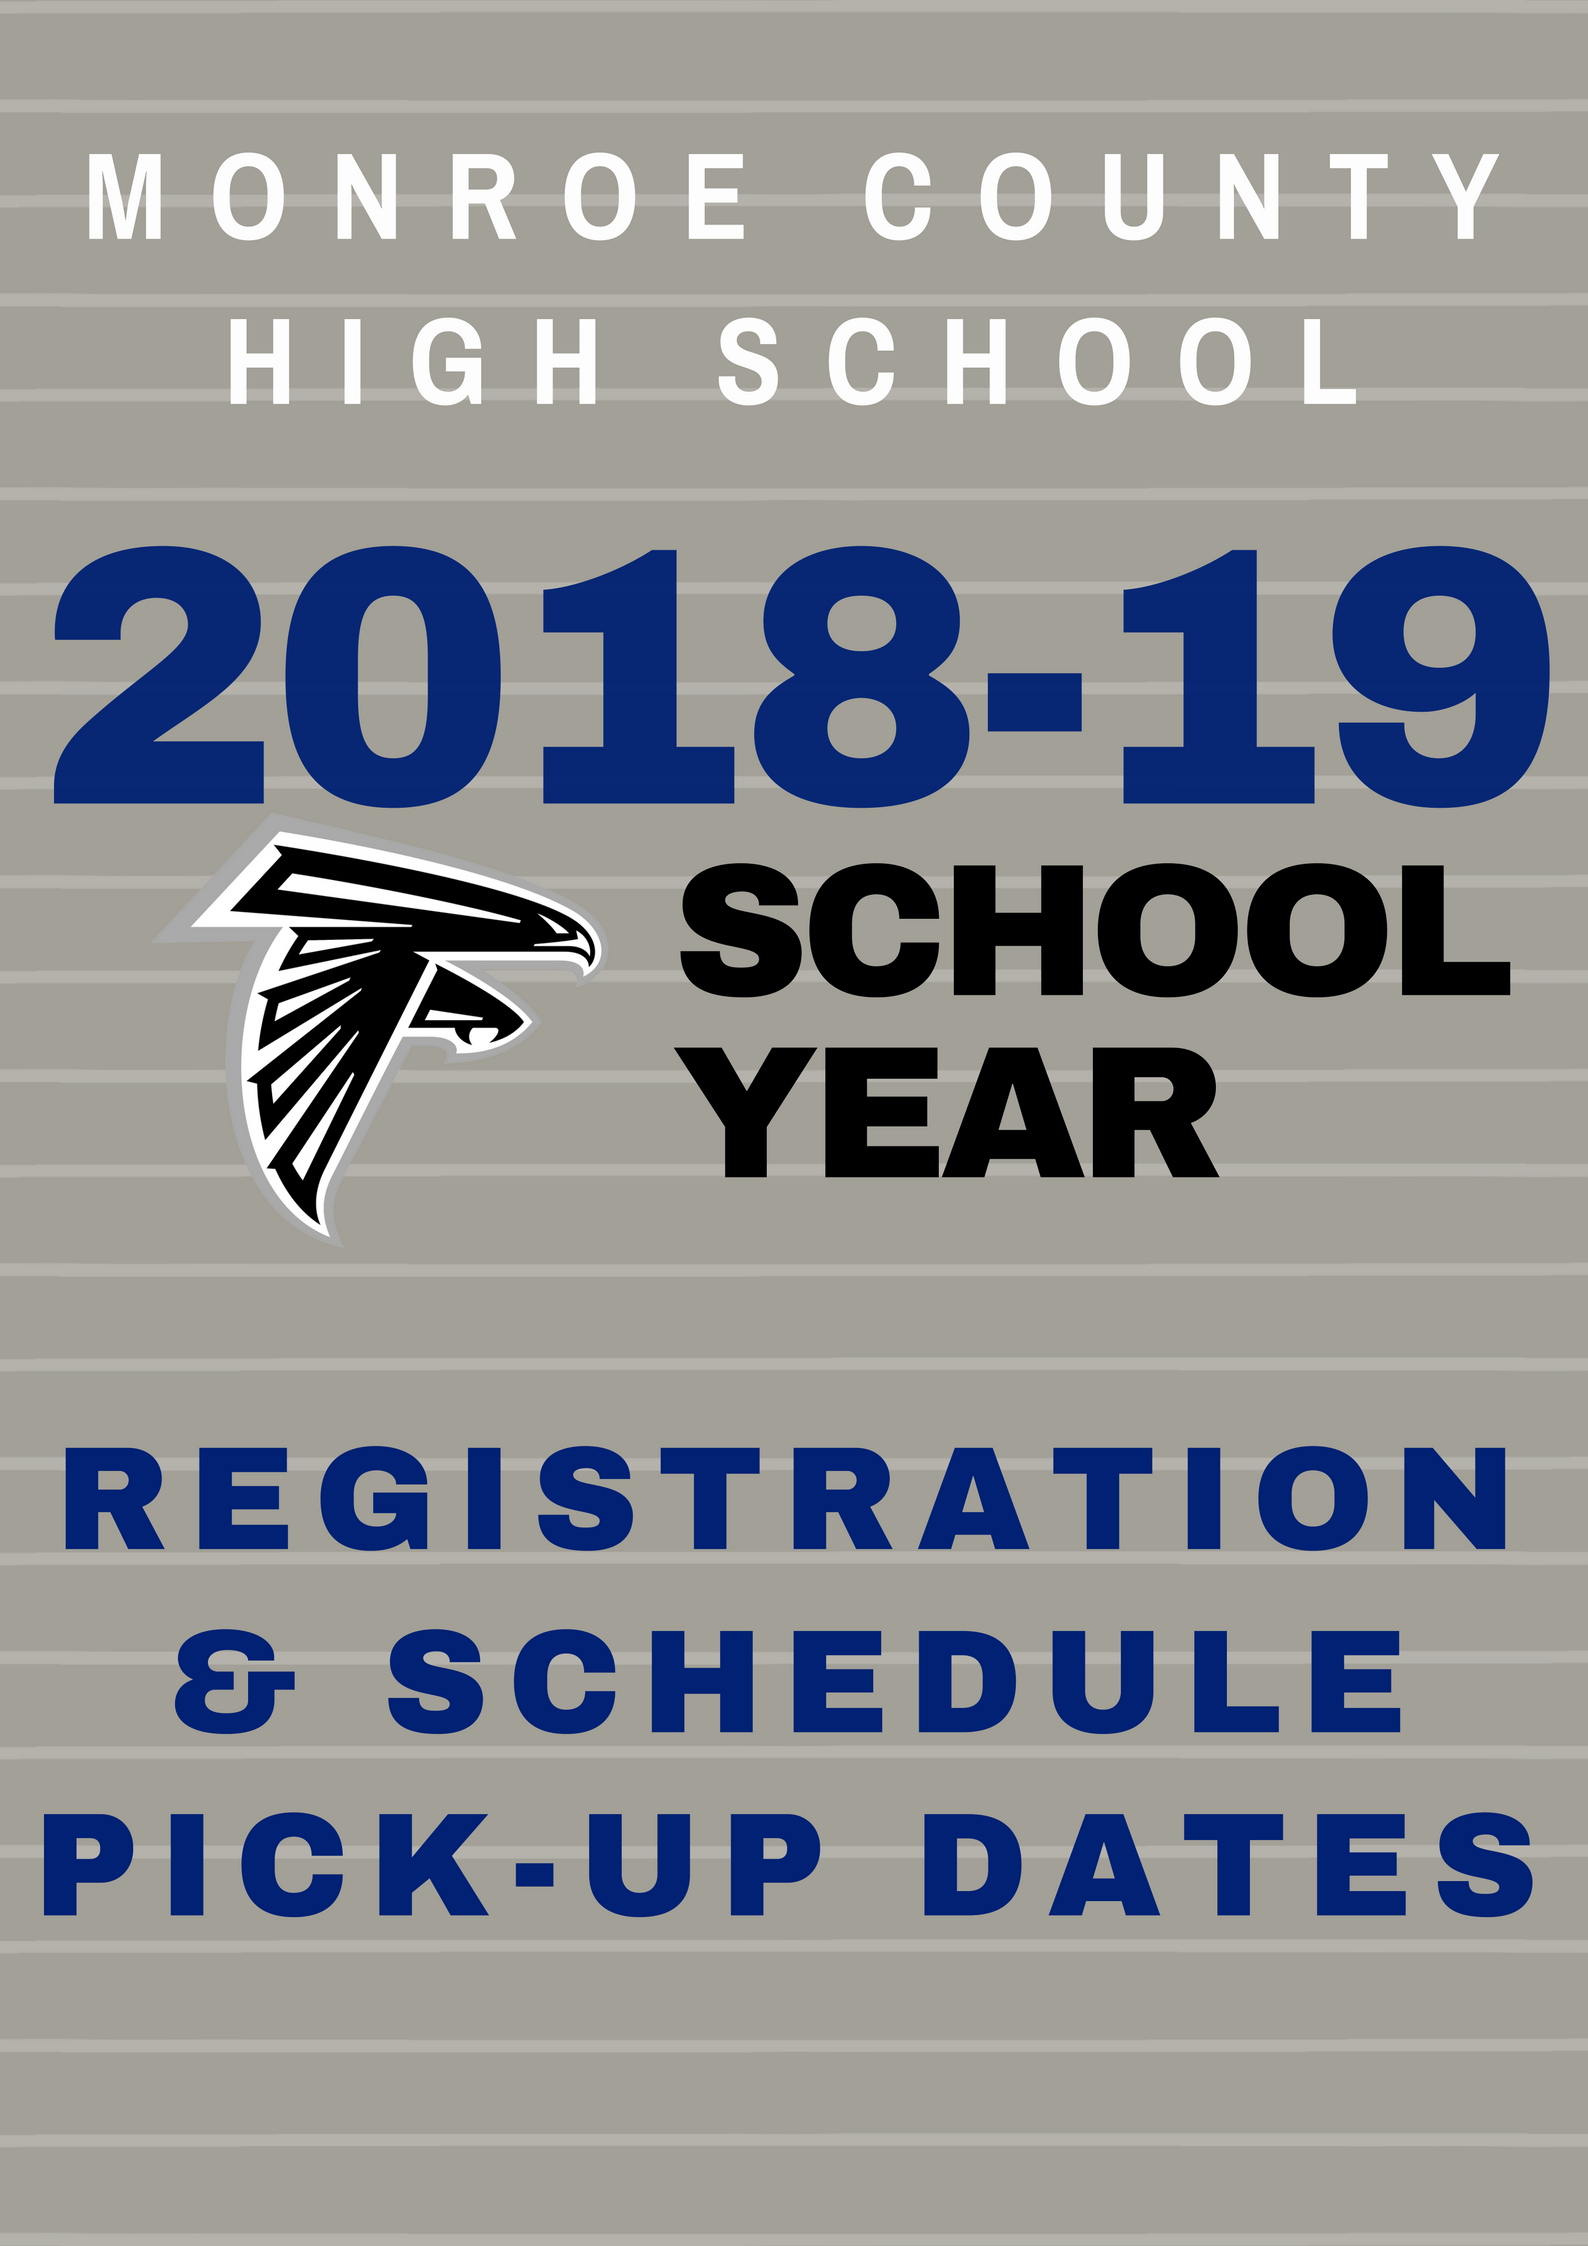 MCHS Registration and Schedule Pick Up Dates